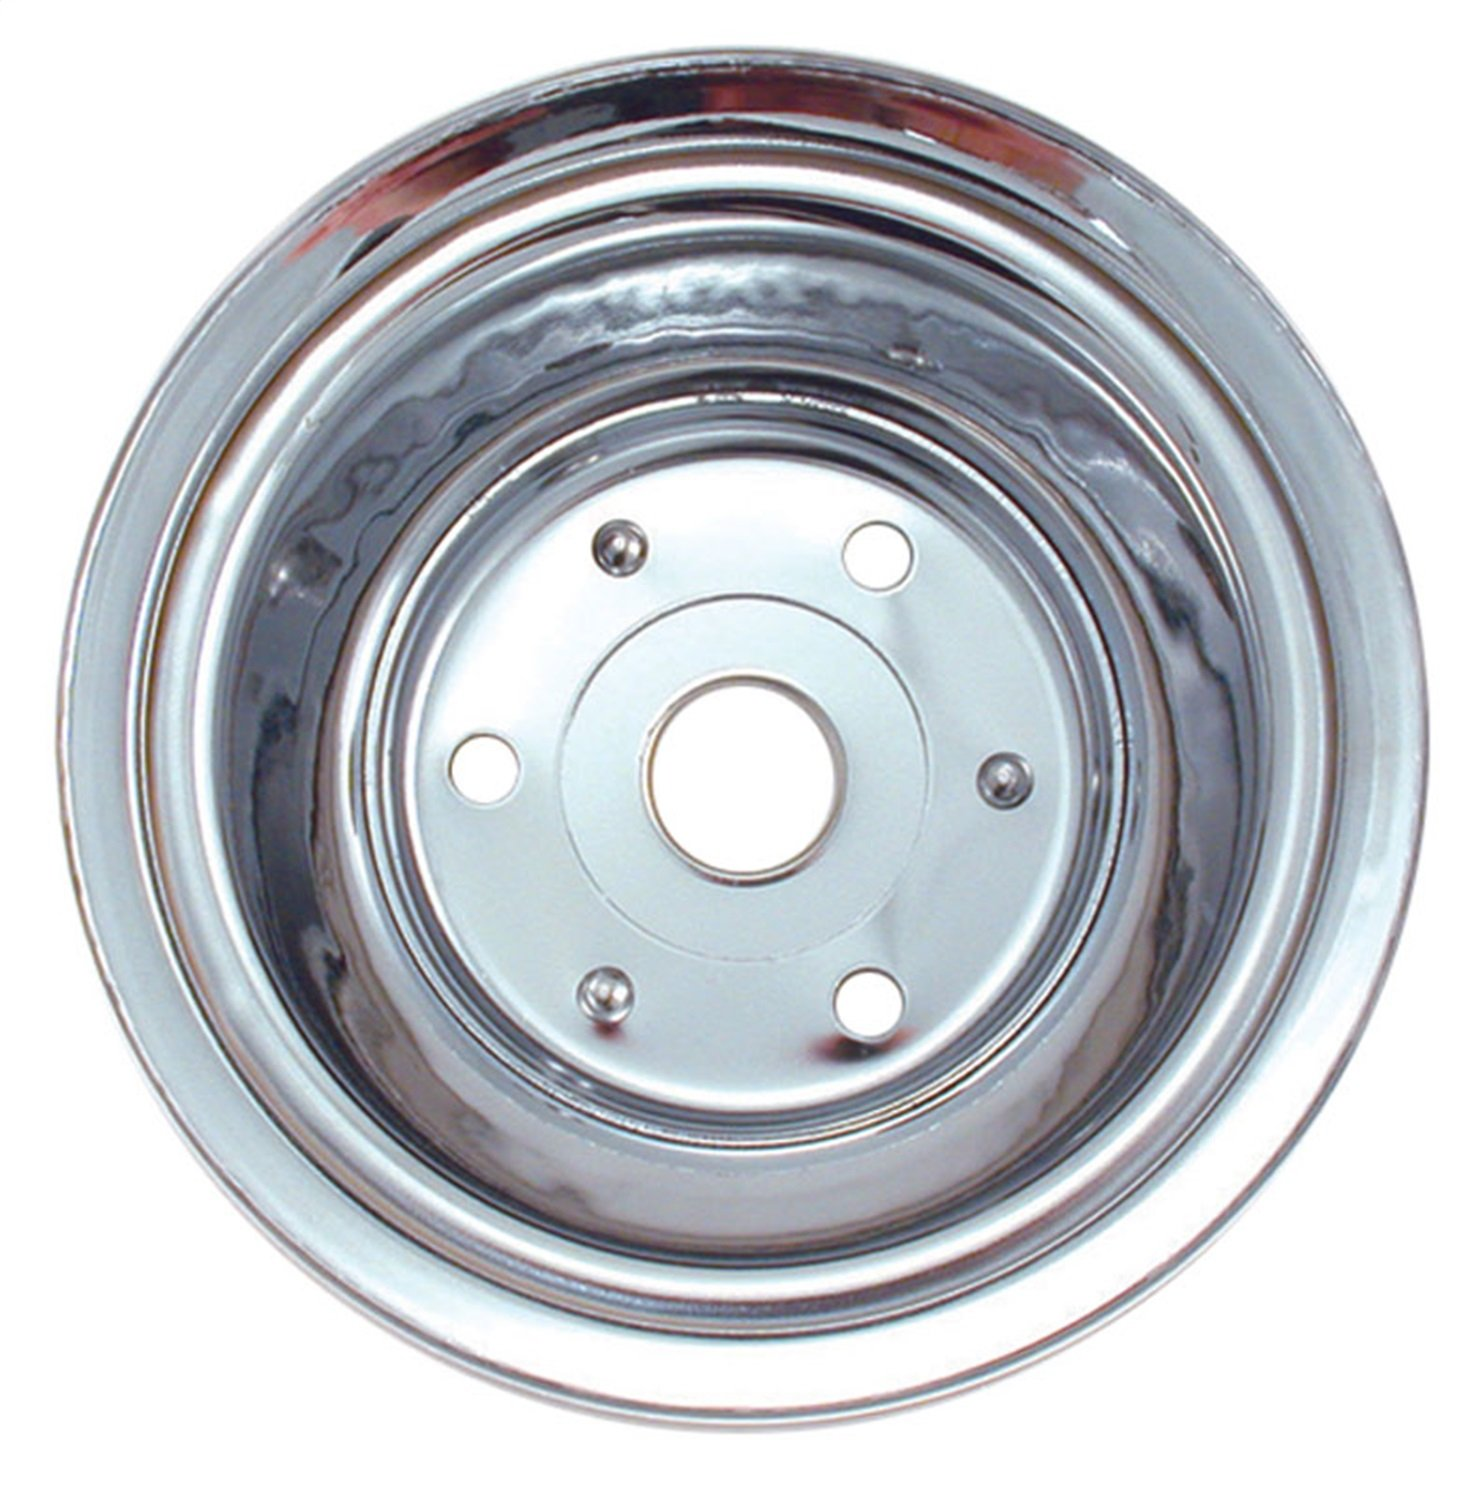 Spectre Performance 4448 Chrome Triple Belt Crankshaft Pulley for Small Block Chevy with Long Water Pump